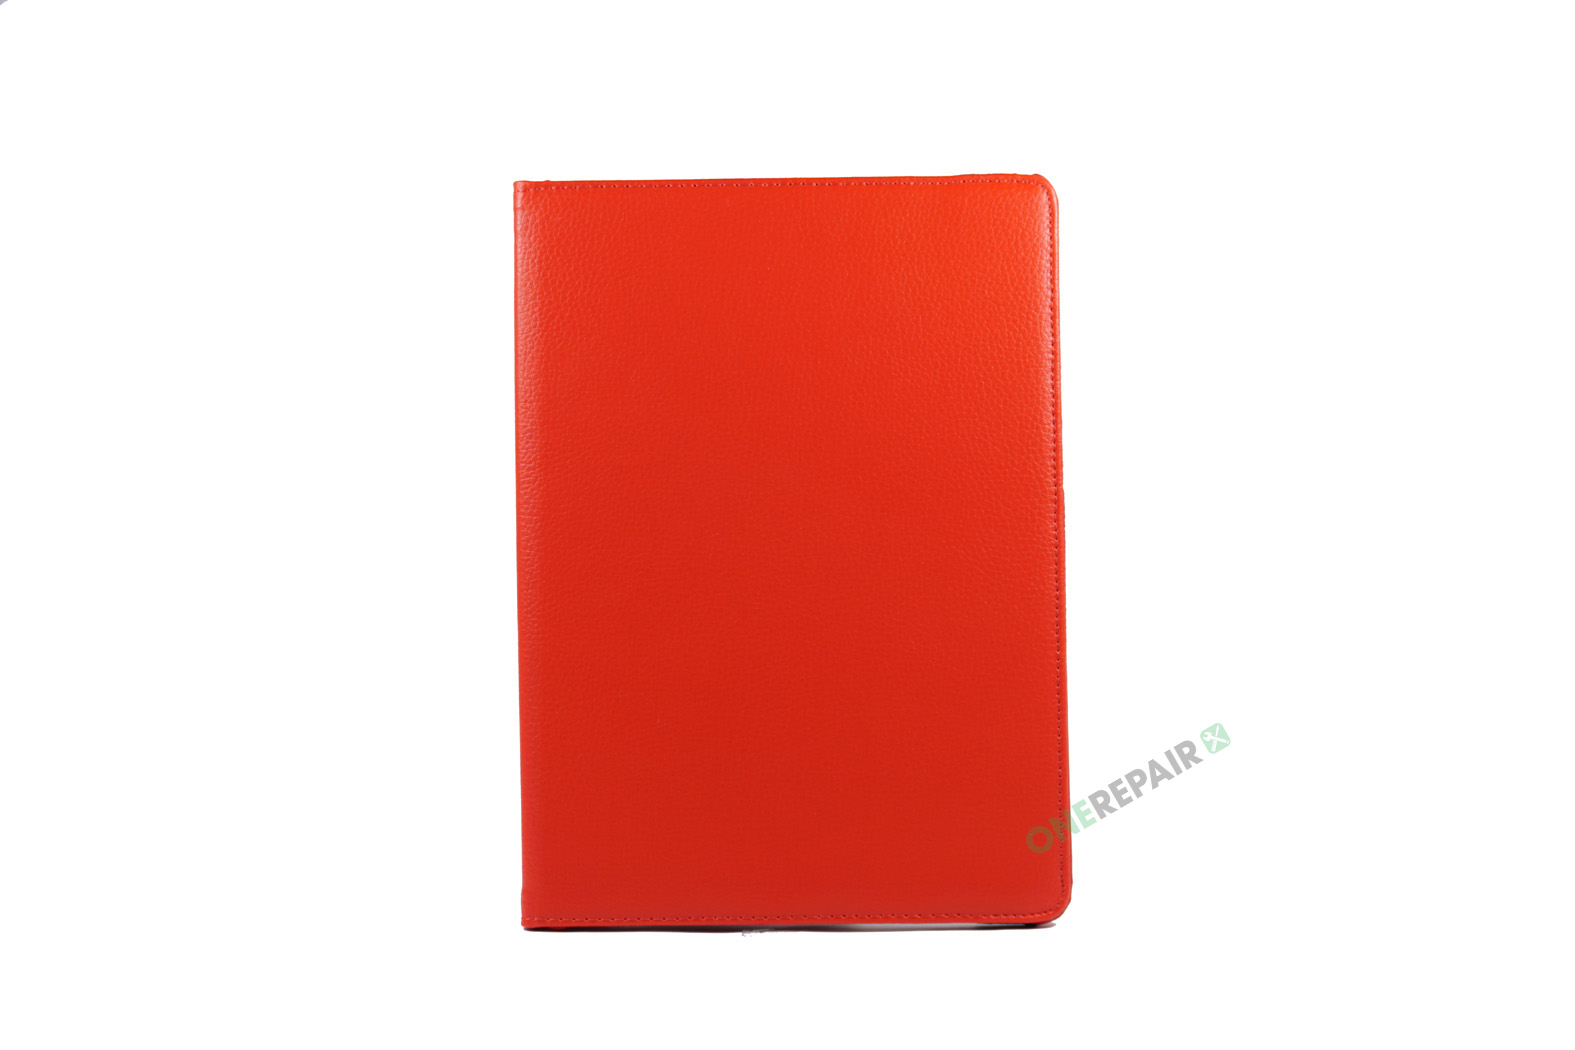 351016_iPad_Air_A1474_A1475_A1476_Flipcover_Cover_Roed_OneRepair_00002